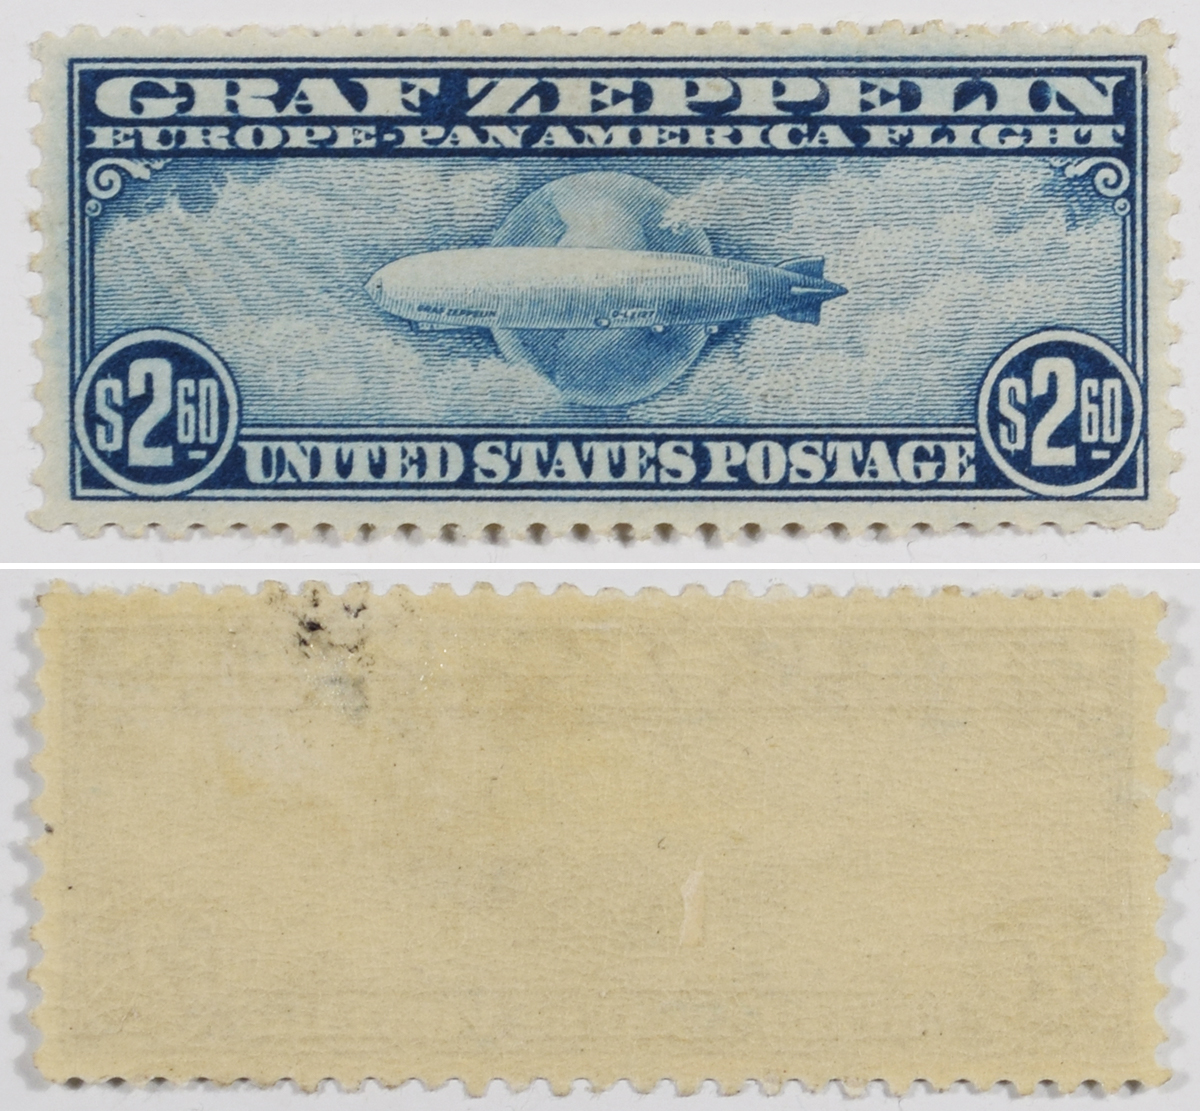 C-13 TO C-15 GRAF ZEPPELIN SET (3), MOG, H, $1 30 IS CHOICE-A GREAT PRICED  SET!